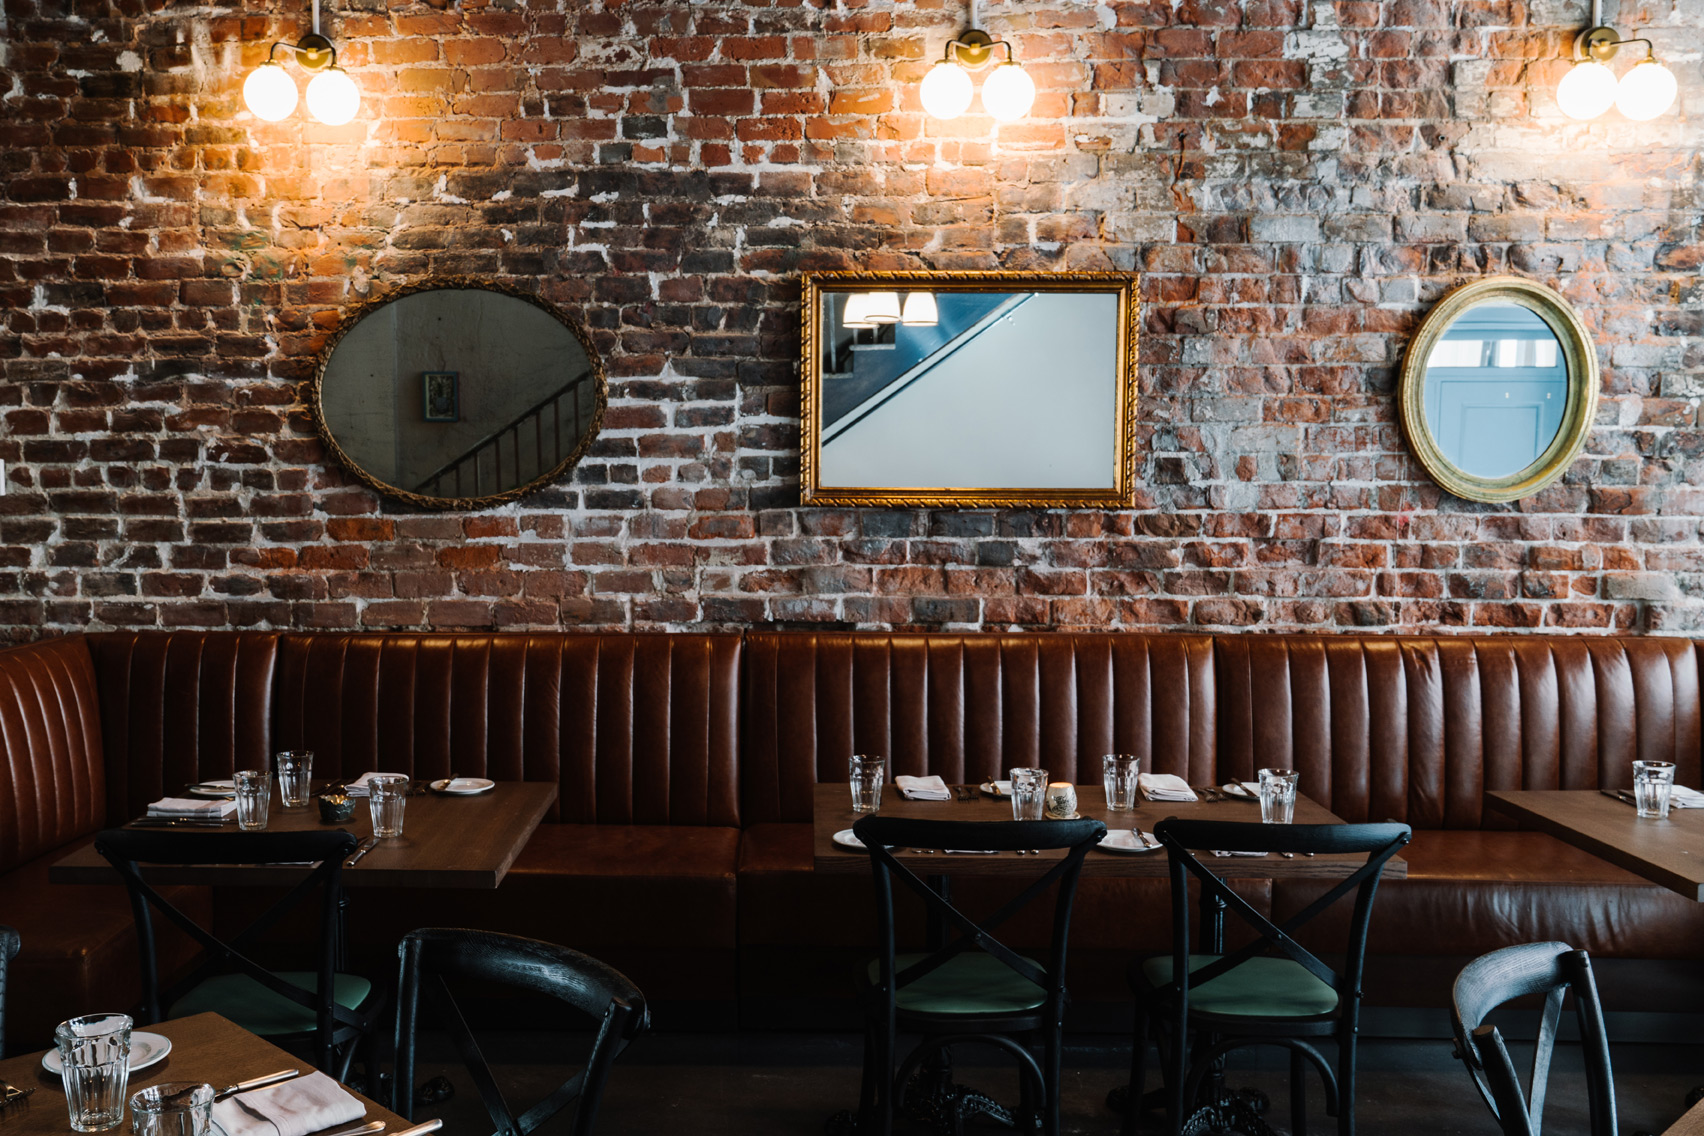 How Couvant Went From Former Bitters Factory to Sleek French Brasserie